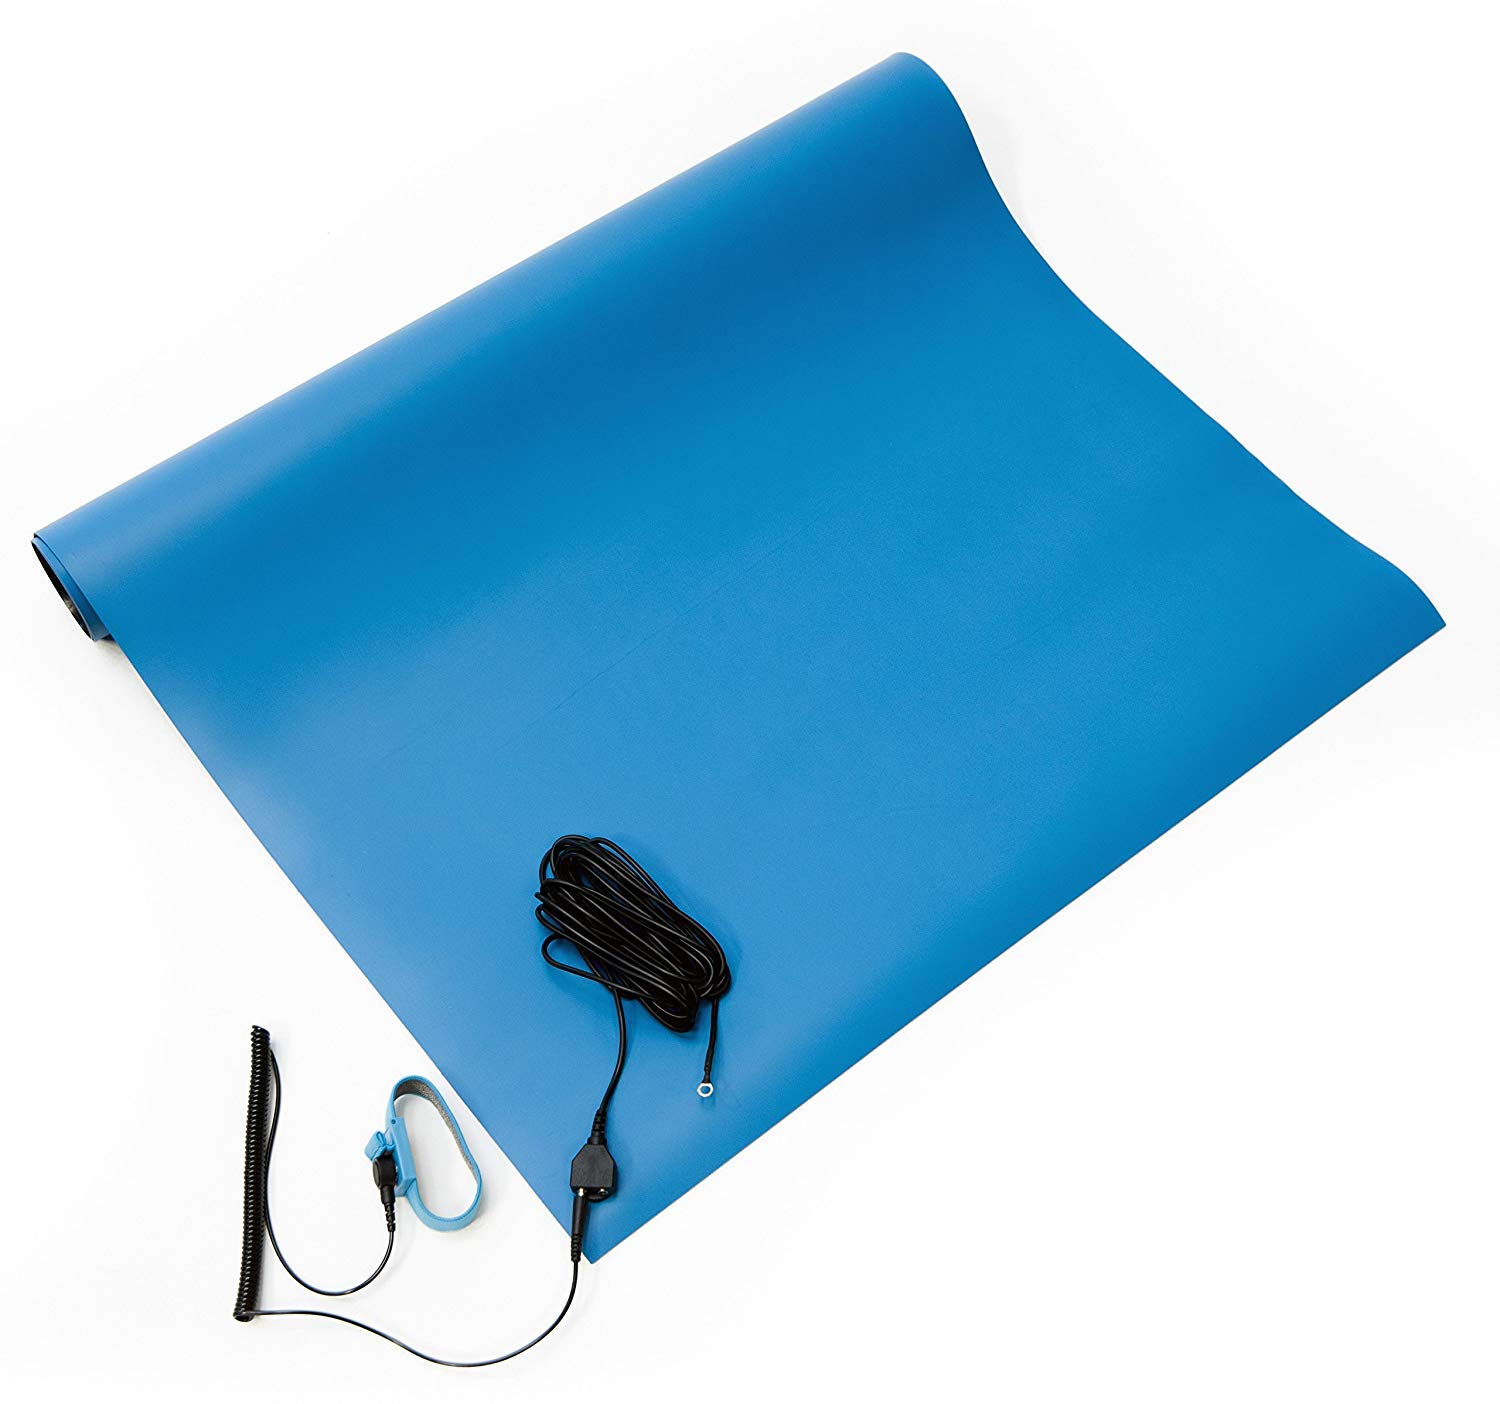 Bertech Rubber ESD Soldering Mat Kit with a Wrist Strap and Grounding Cord, 20'' Wide x 36'' Long, Blue